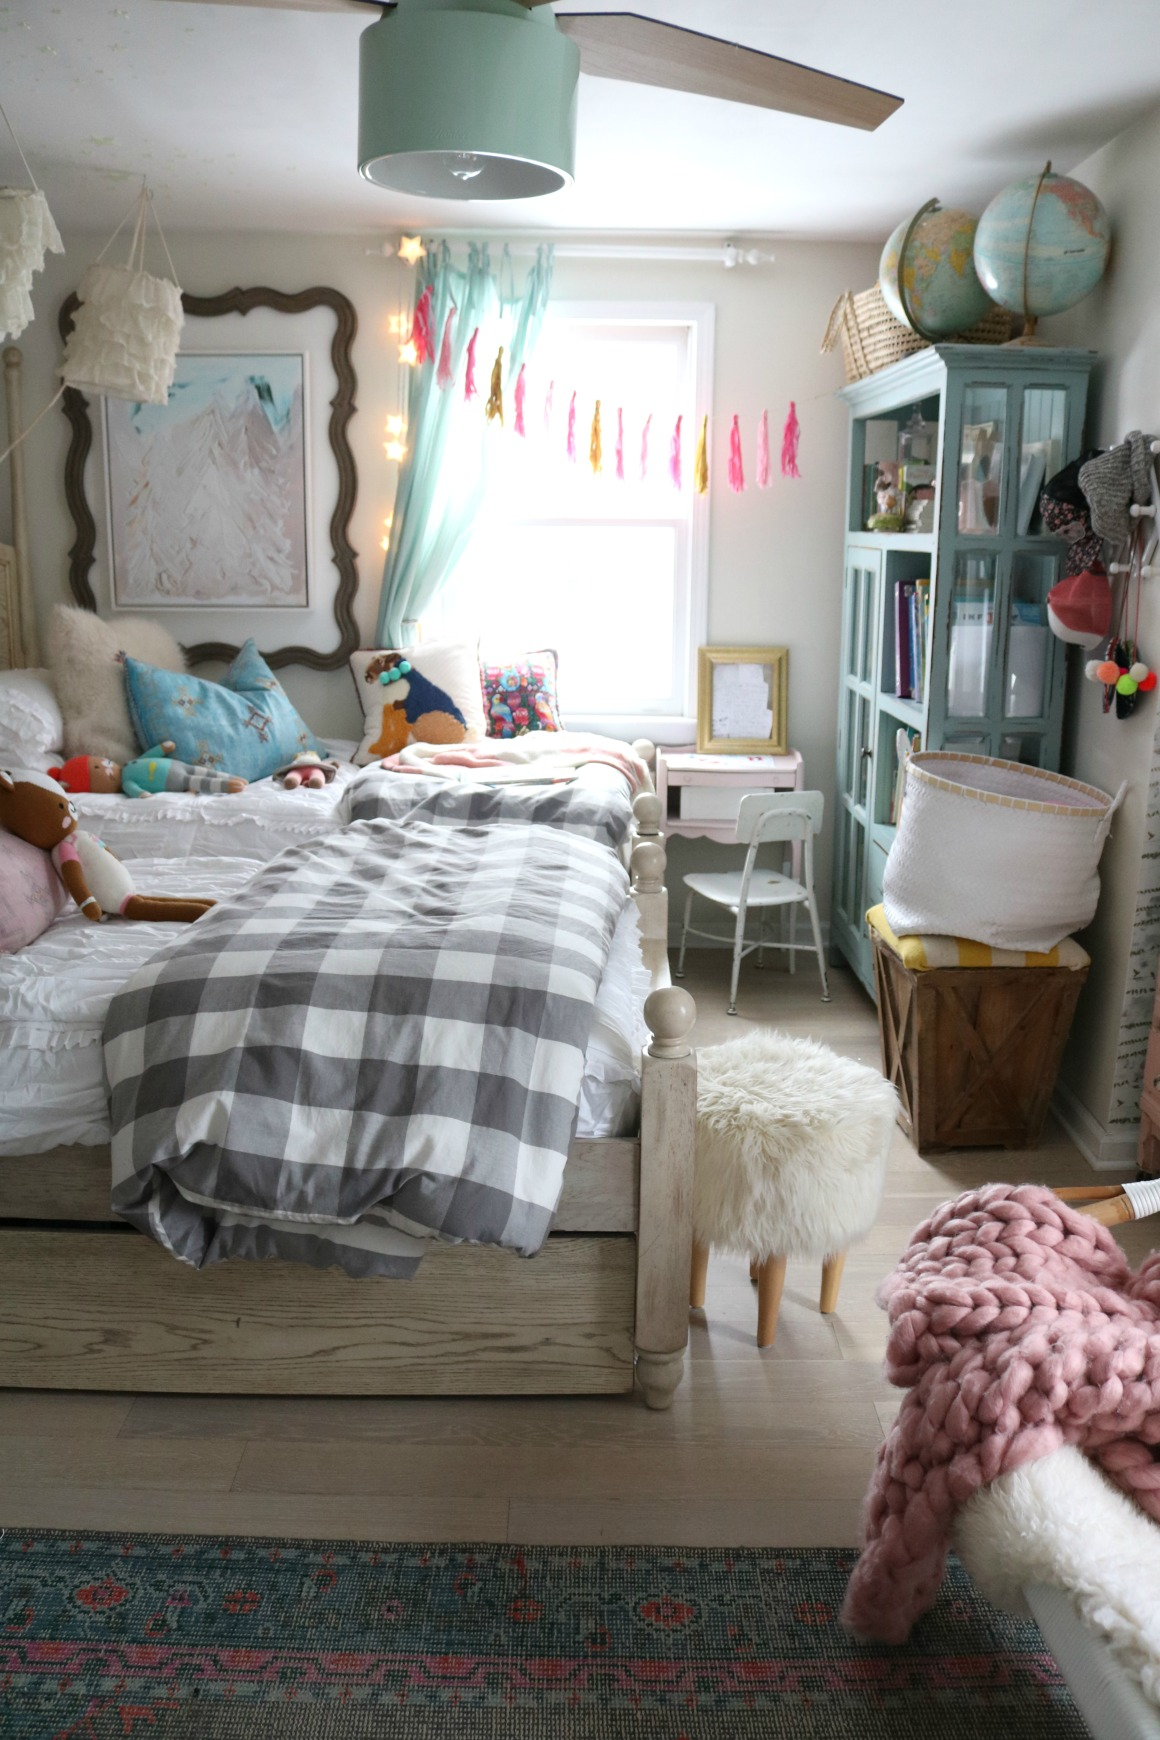 How to Make Your Home Cozy- 4 Simple Tips